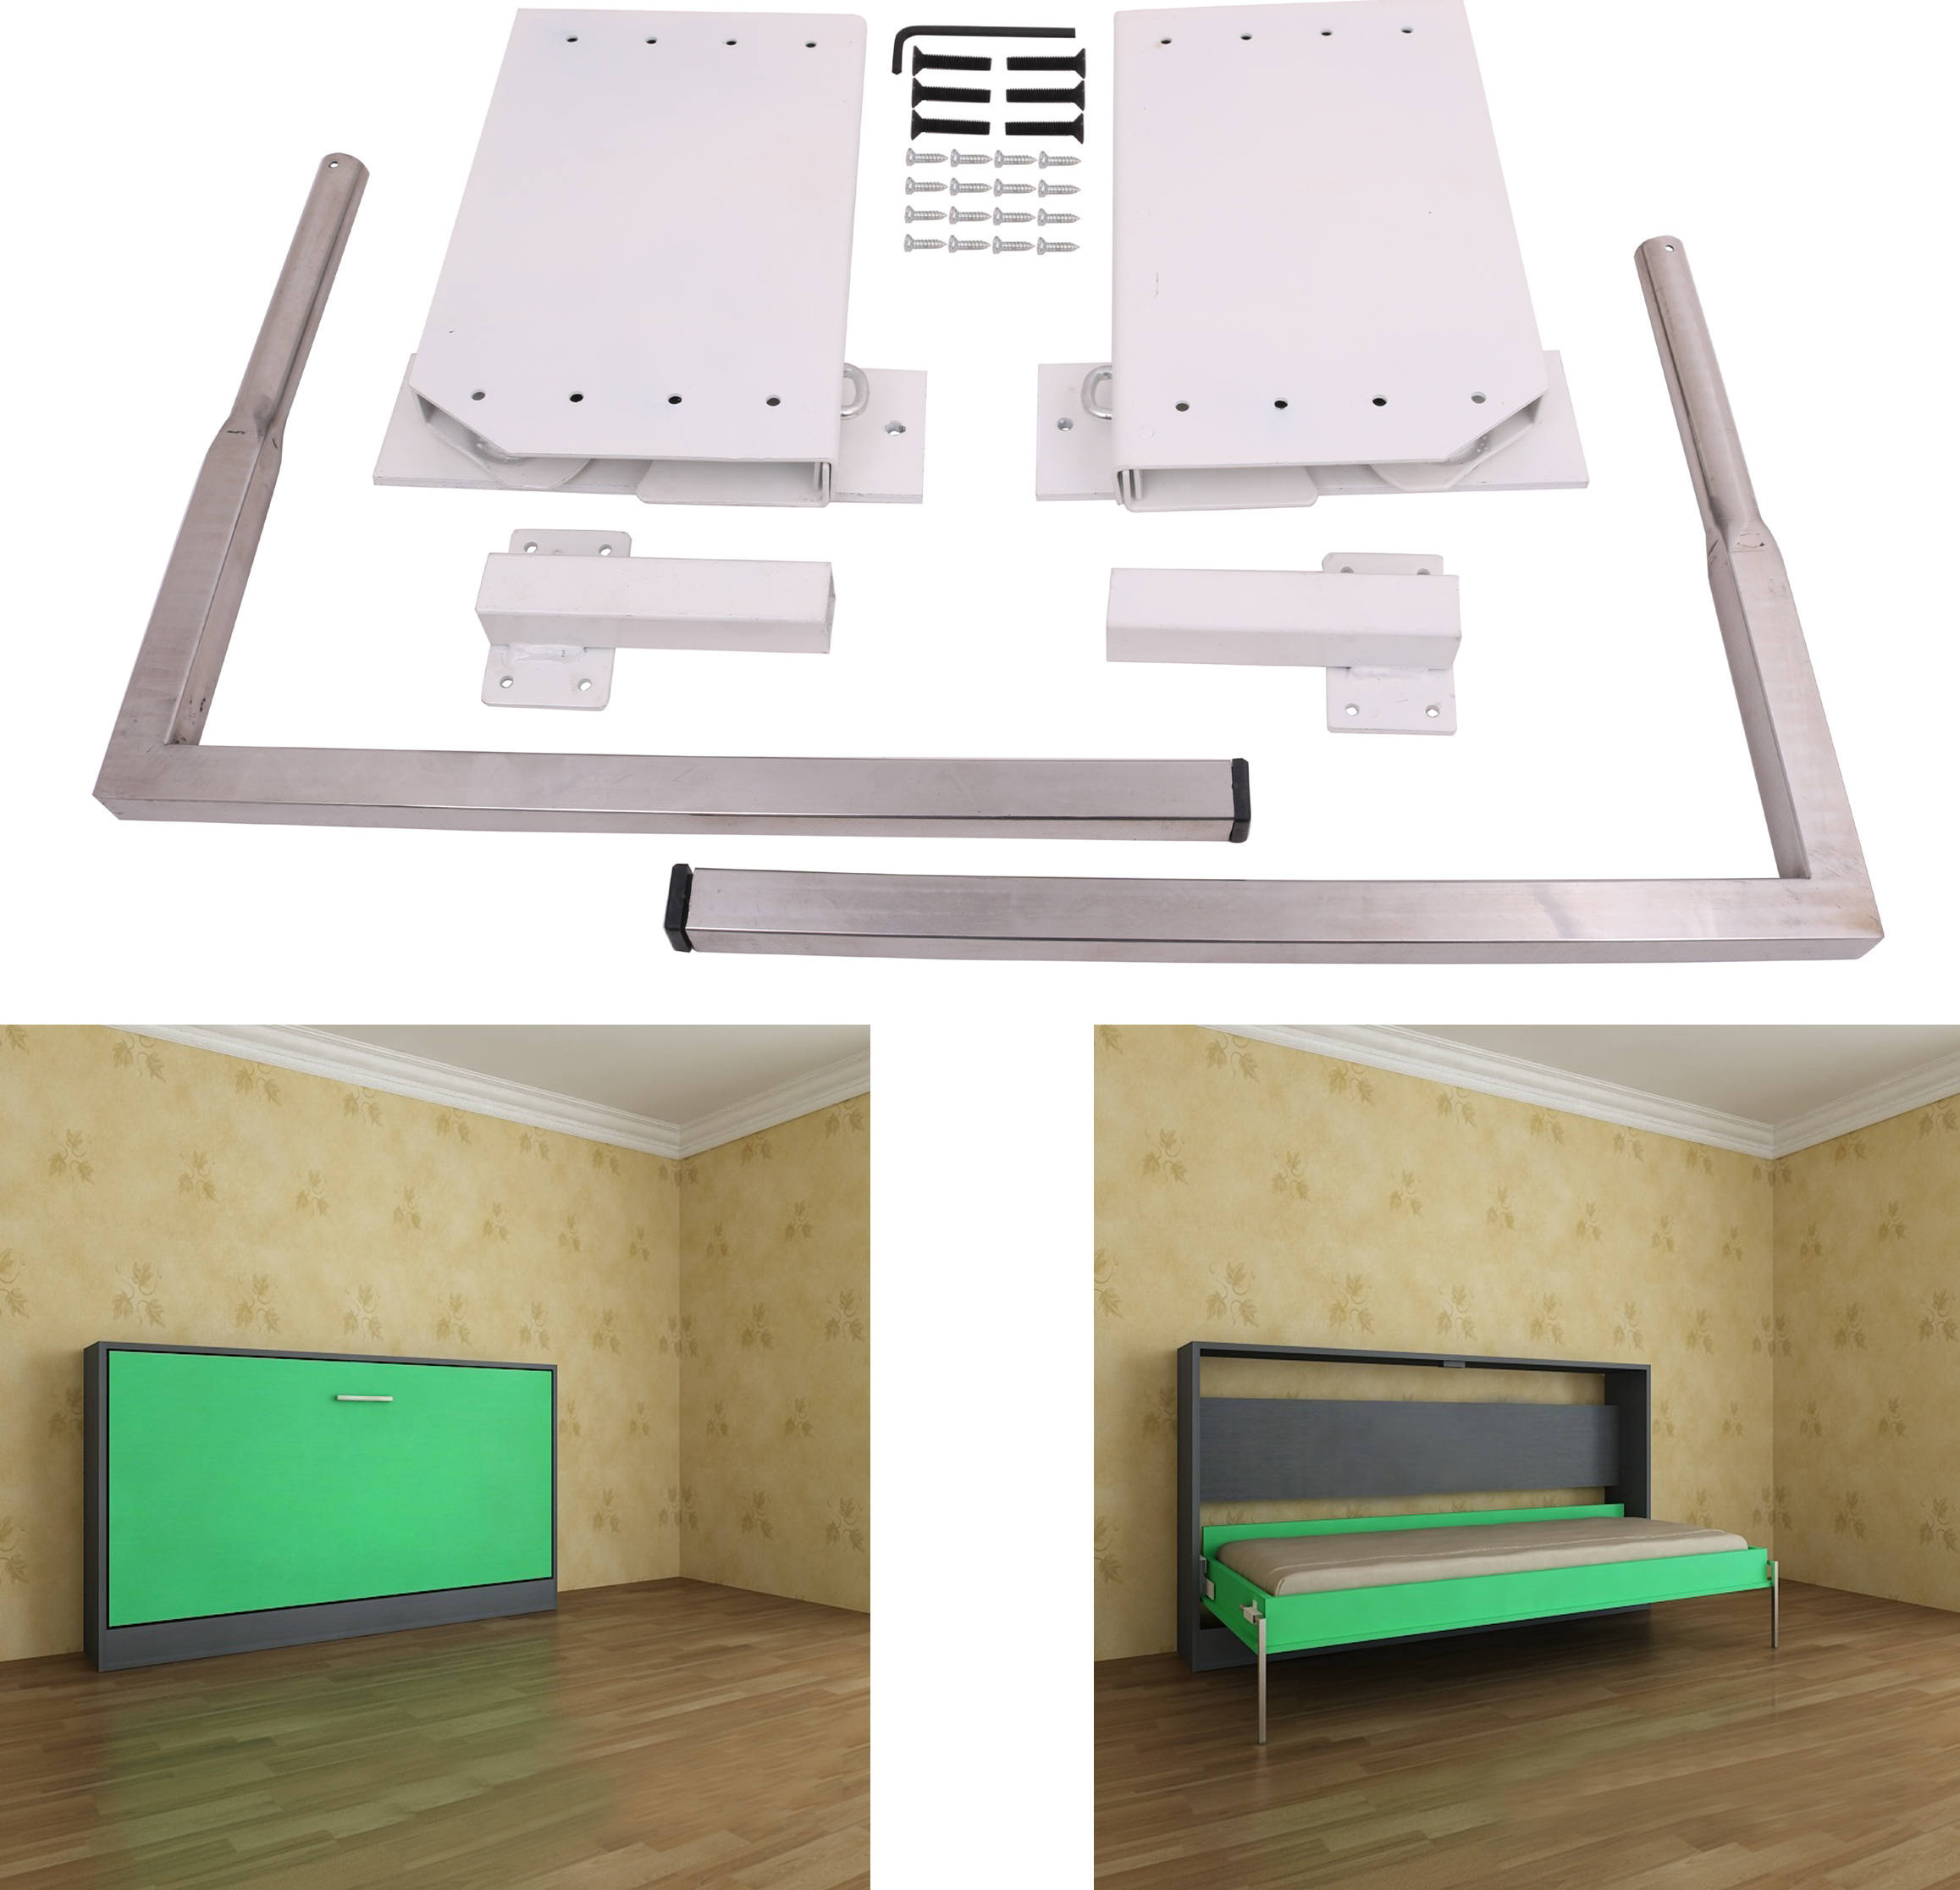 Best ideas about Murphy Bed DIY Kit . Save or Pin DIY Murphy Wall Bed Springs Mechanism Hardware Kit Now.